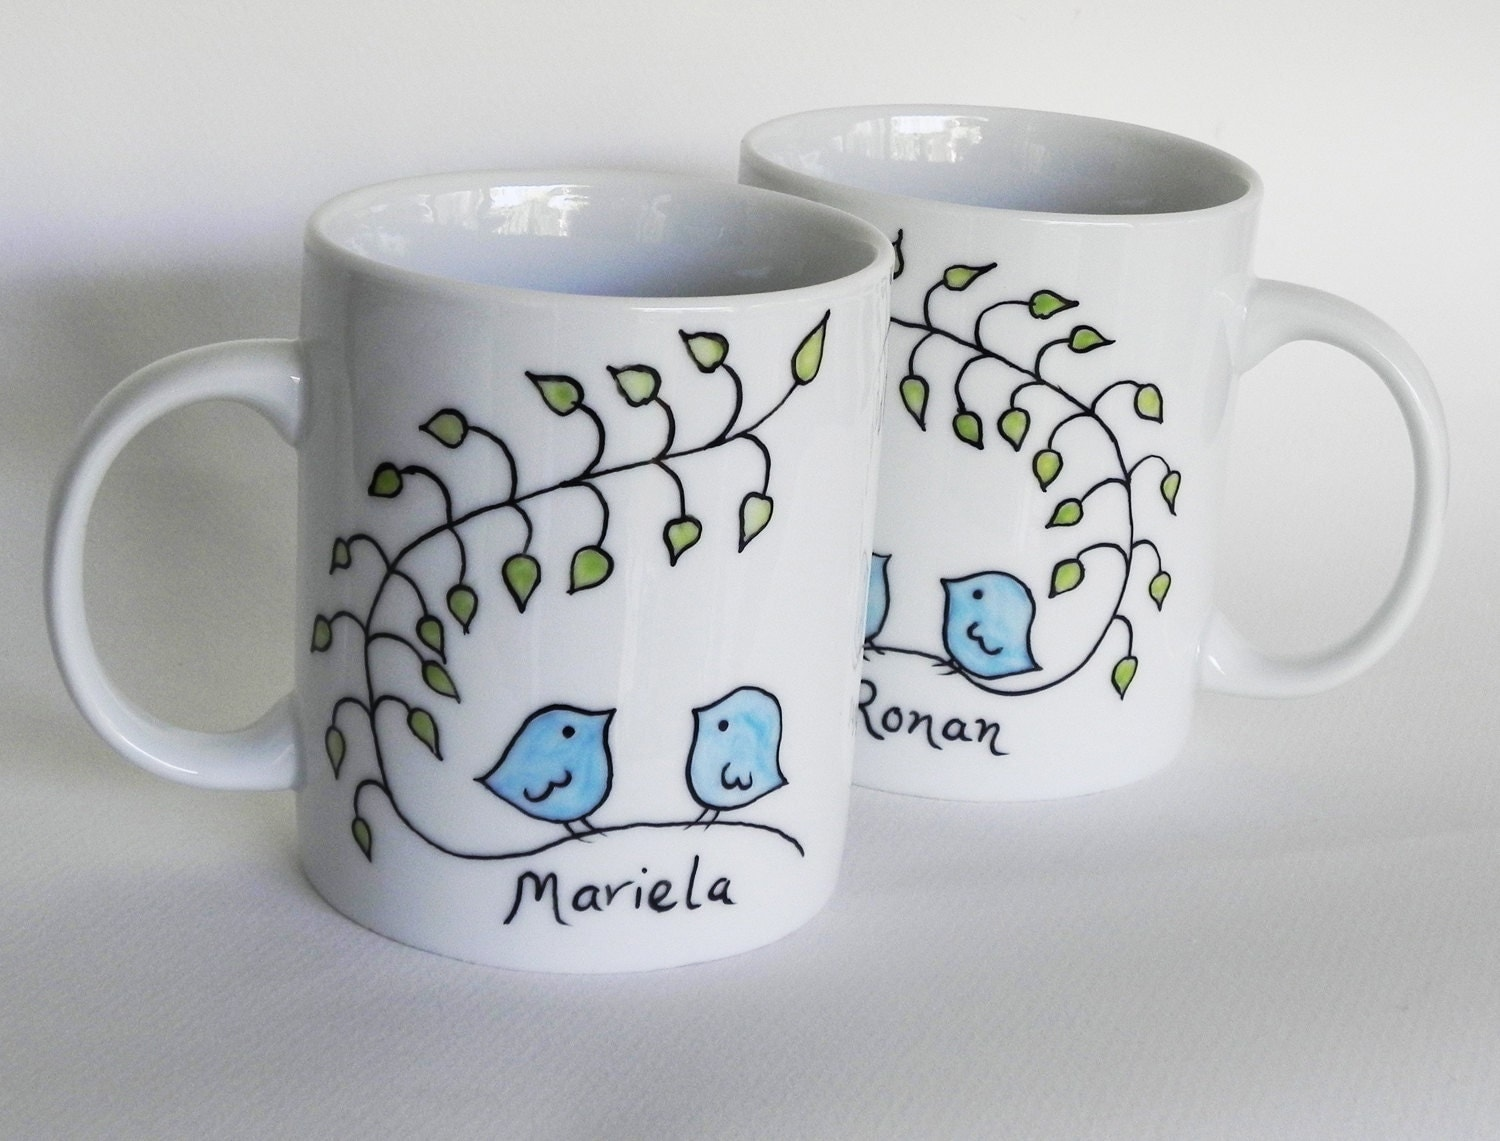 Wedding Gift Ideas For A Gay Couple : ... painted mug wedding gift anniversary gift for couples gay wedding gift